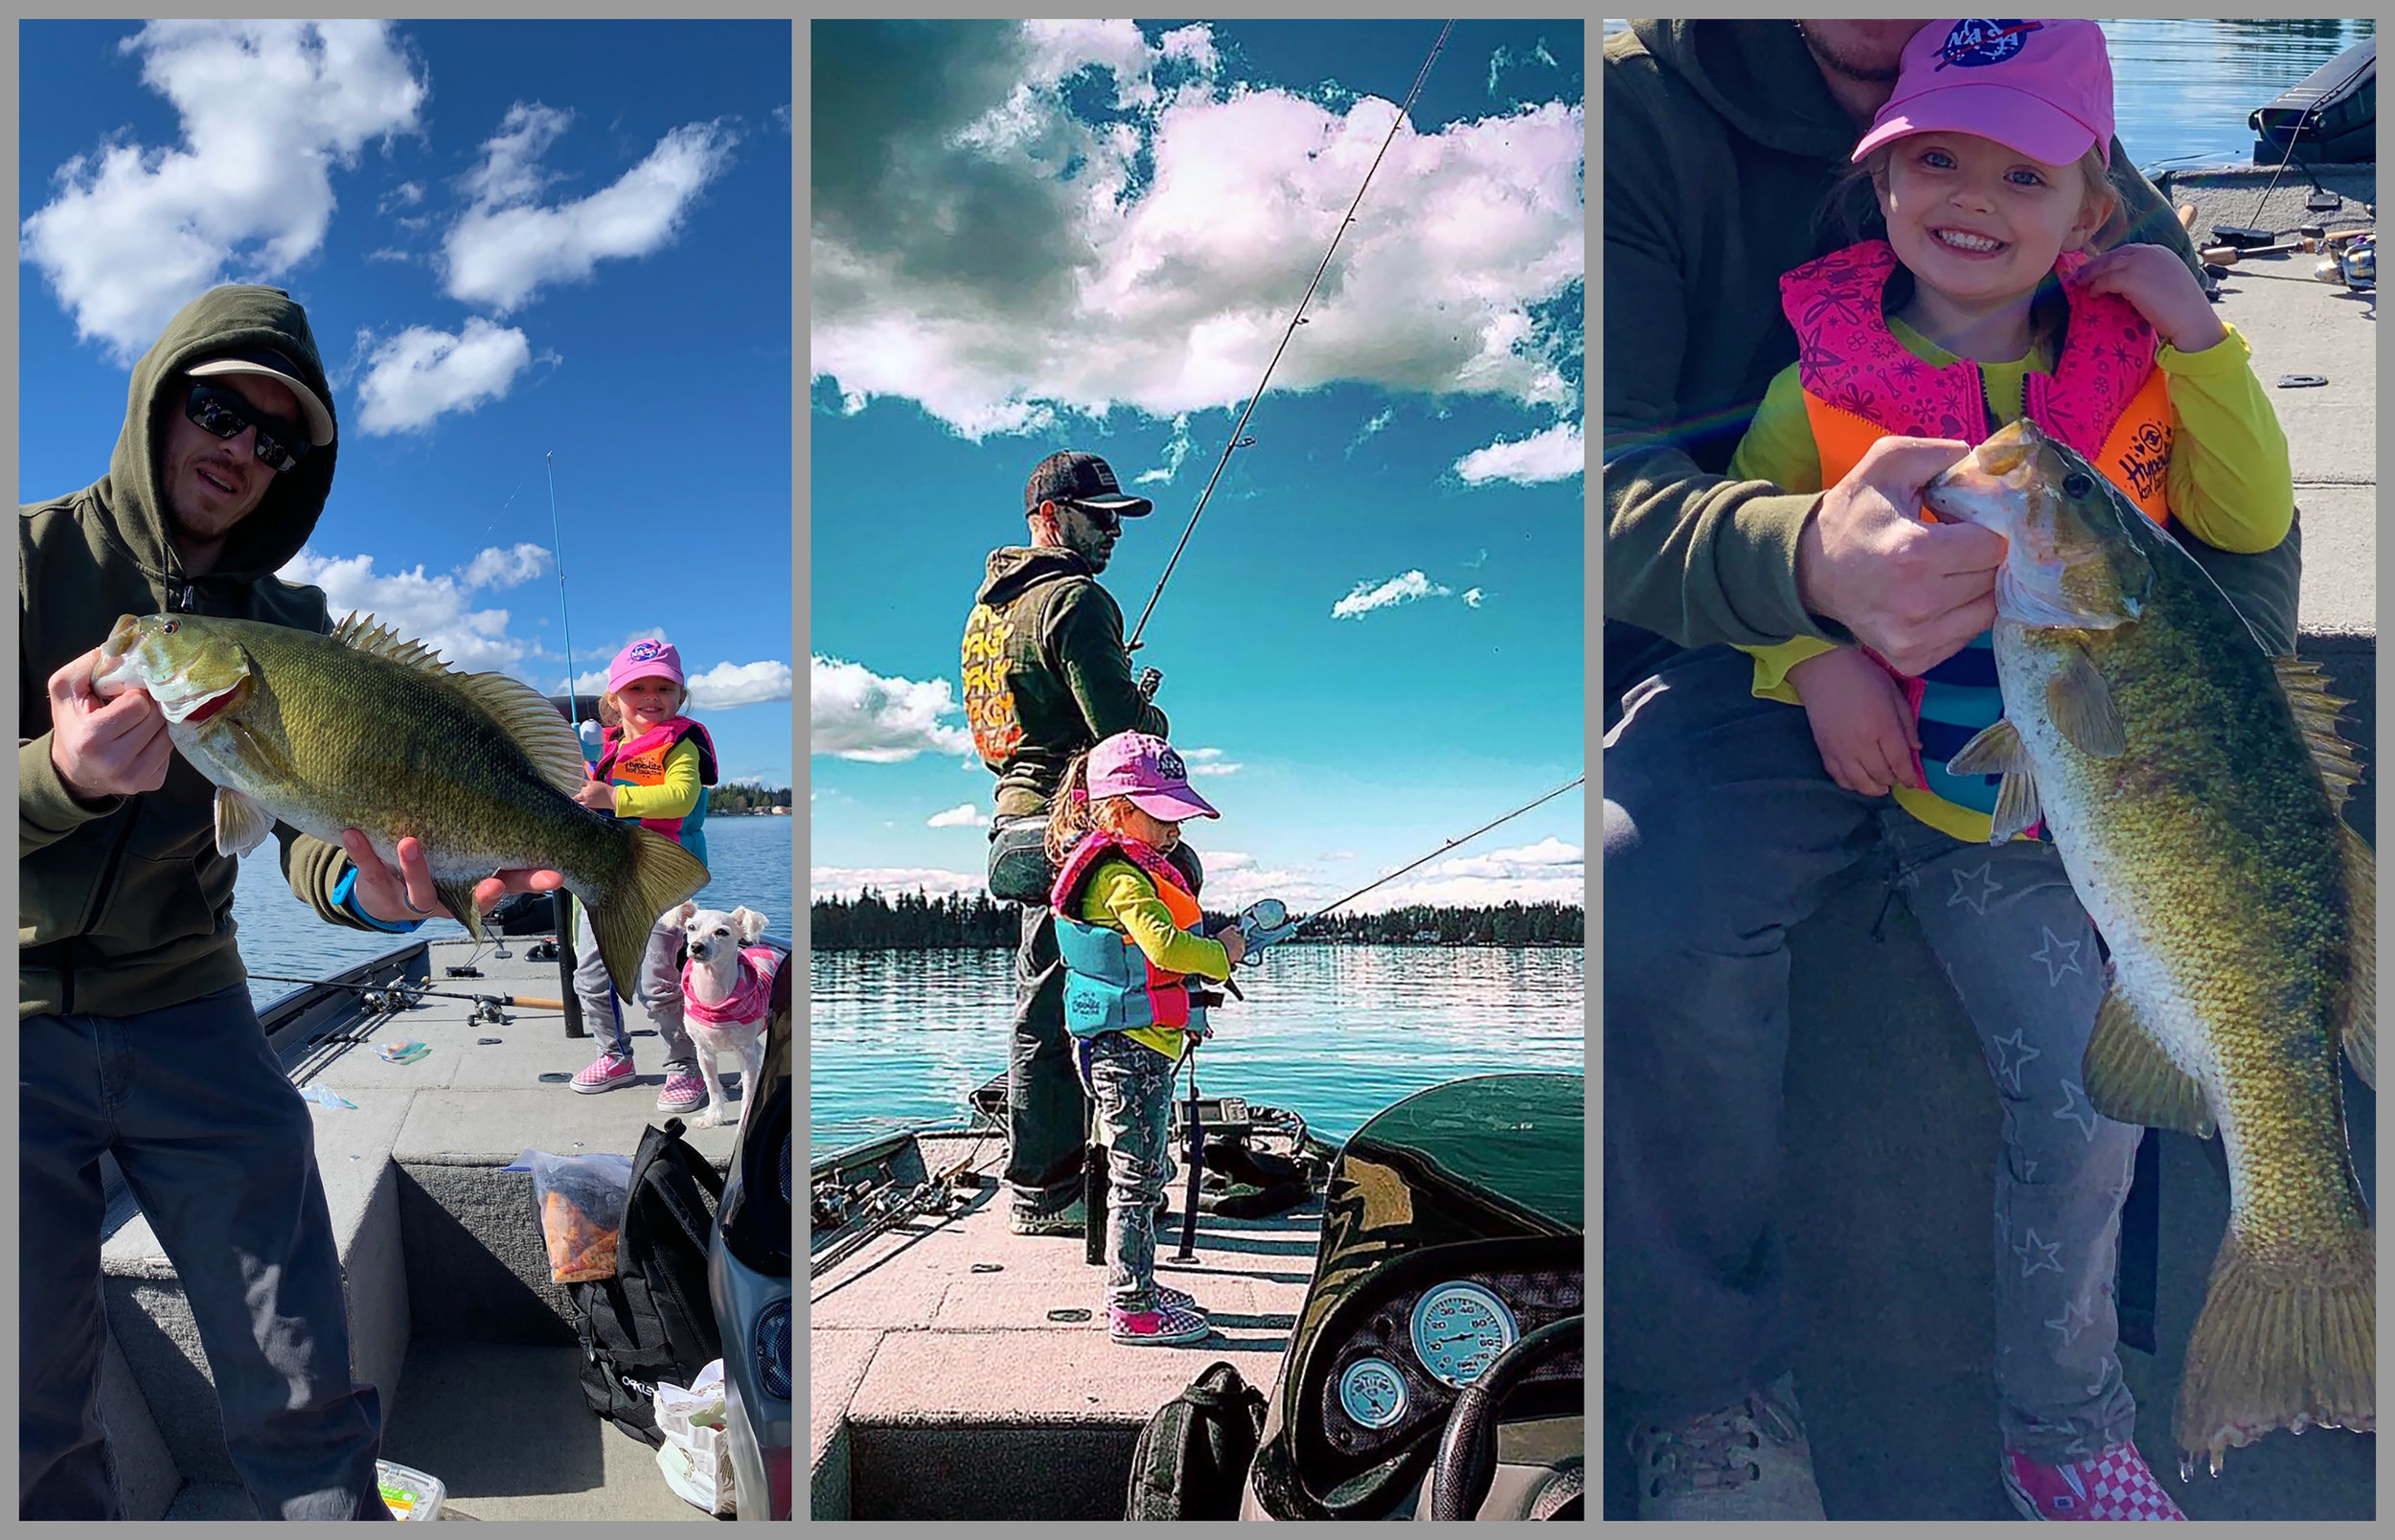 The best fishing has to offer; Steven Zuloaga out on his new home waters enjoying fishing with his daughter Evynn and their pet Lenna, good times!